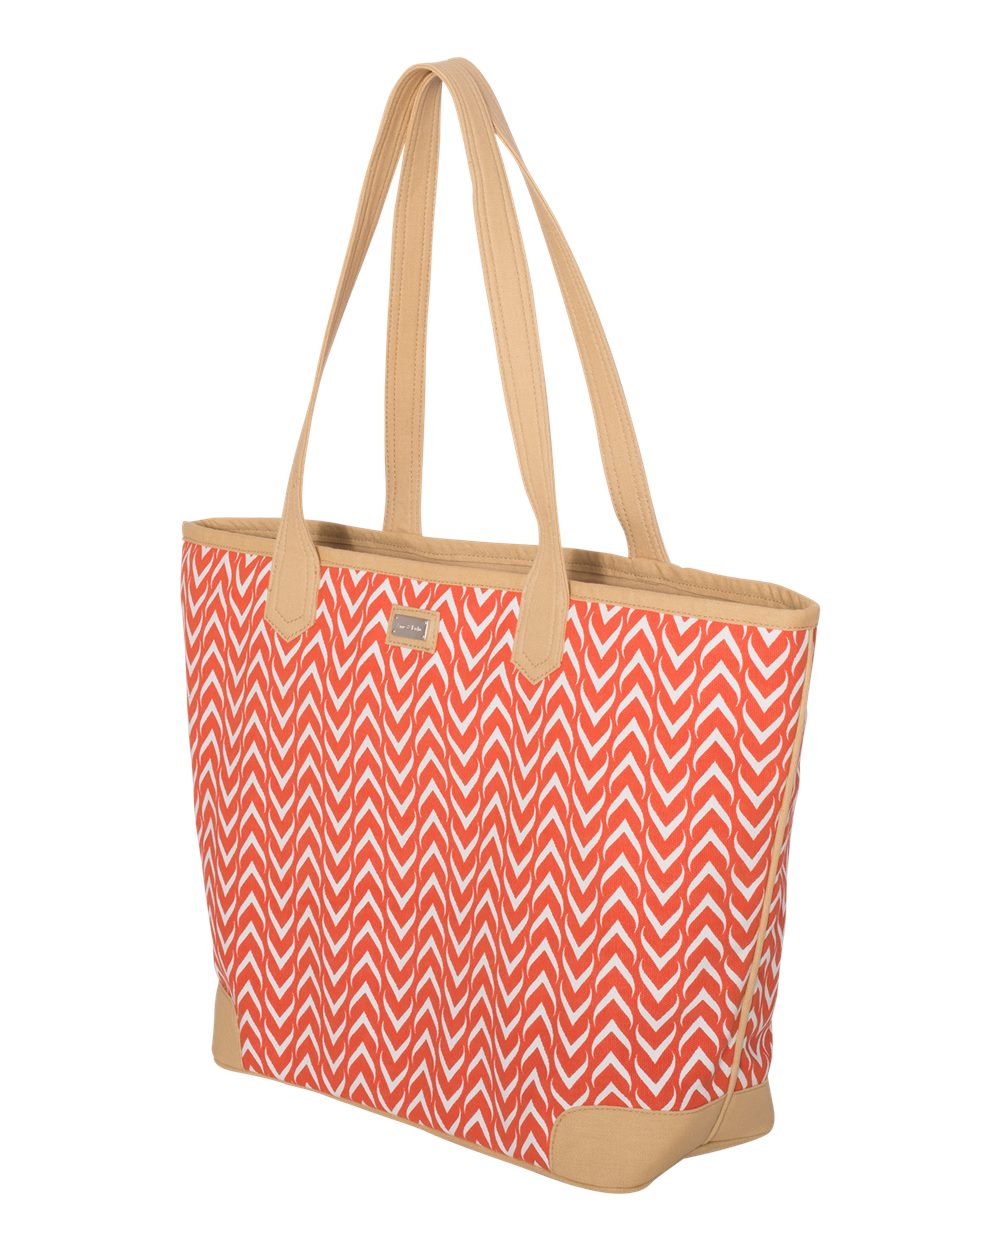 Ame & Lulu DAY100 - 25.5L Day Tote